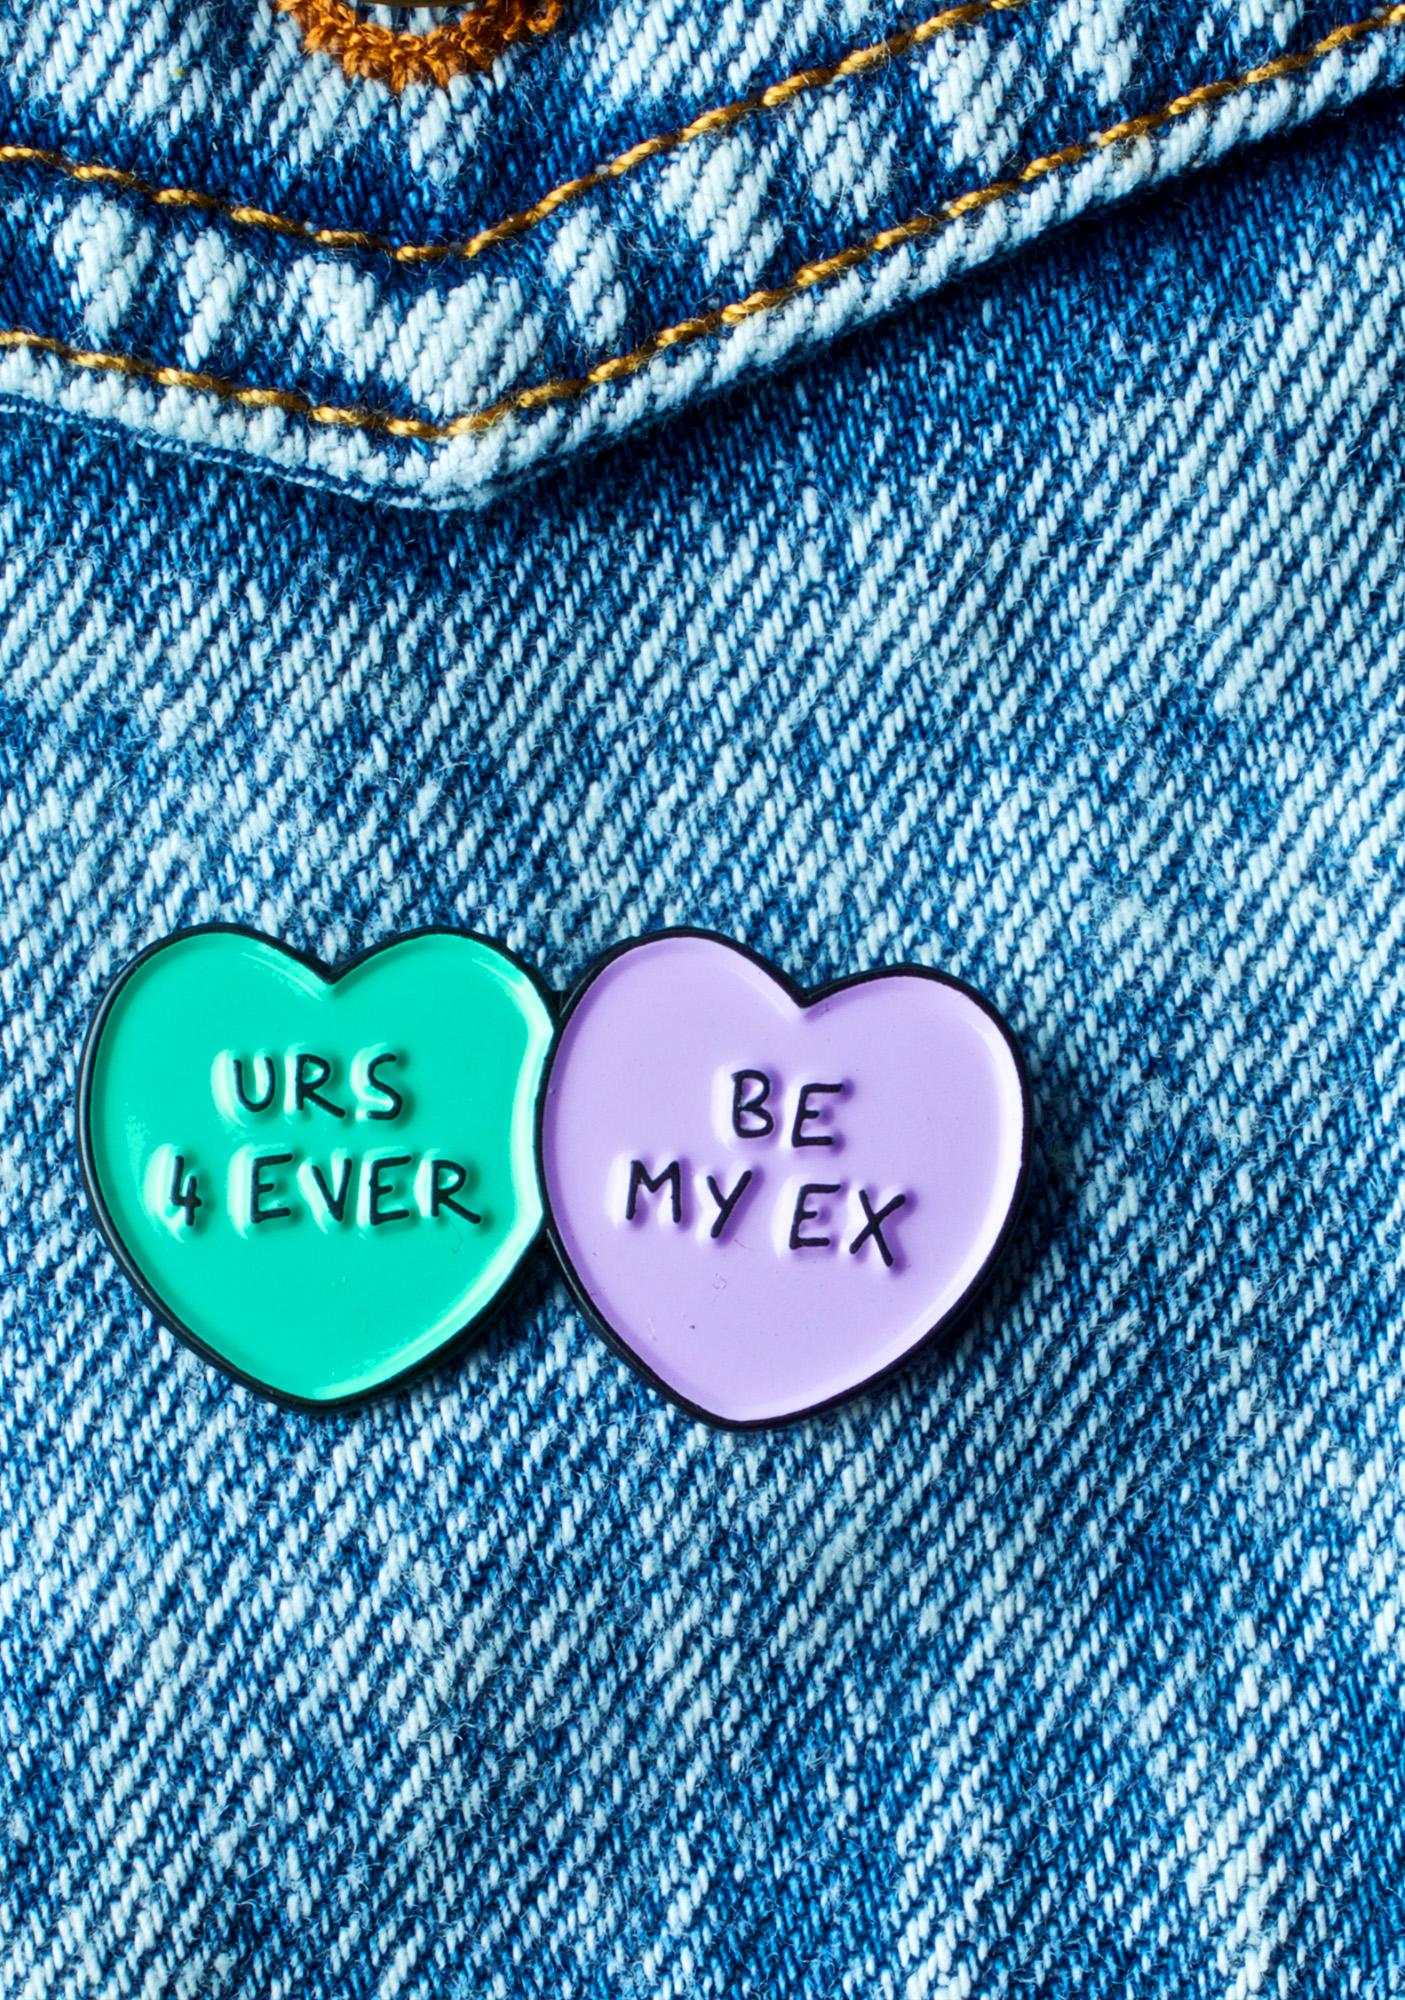 Urs 4Ever Pin